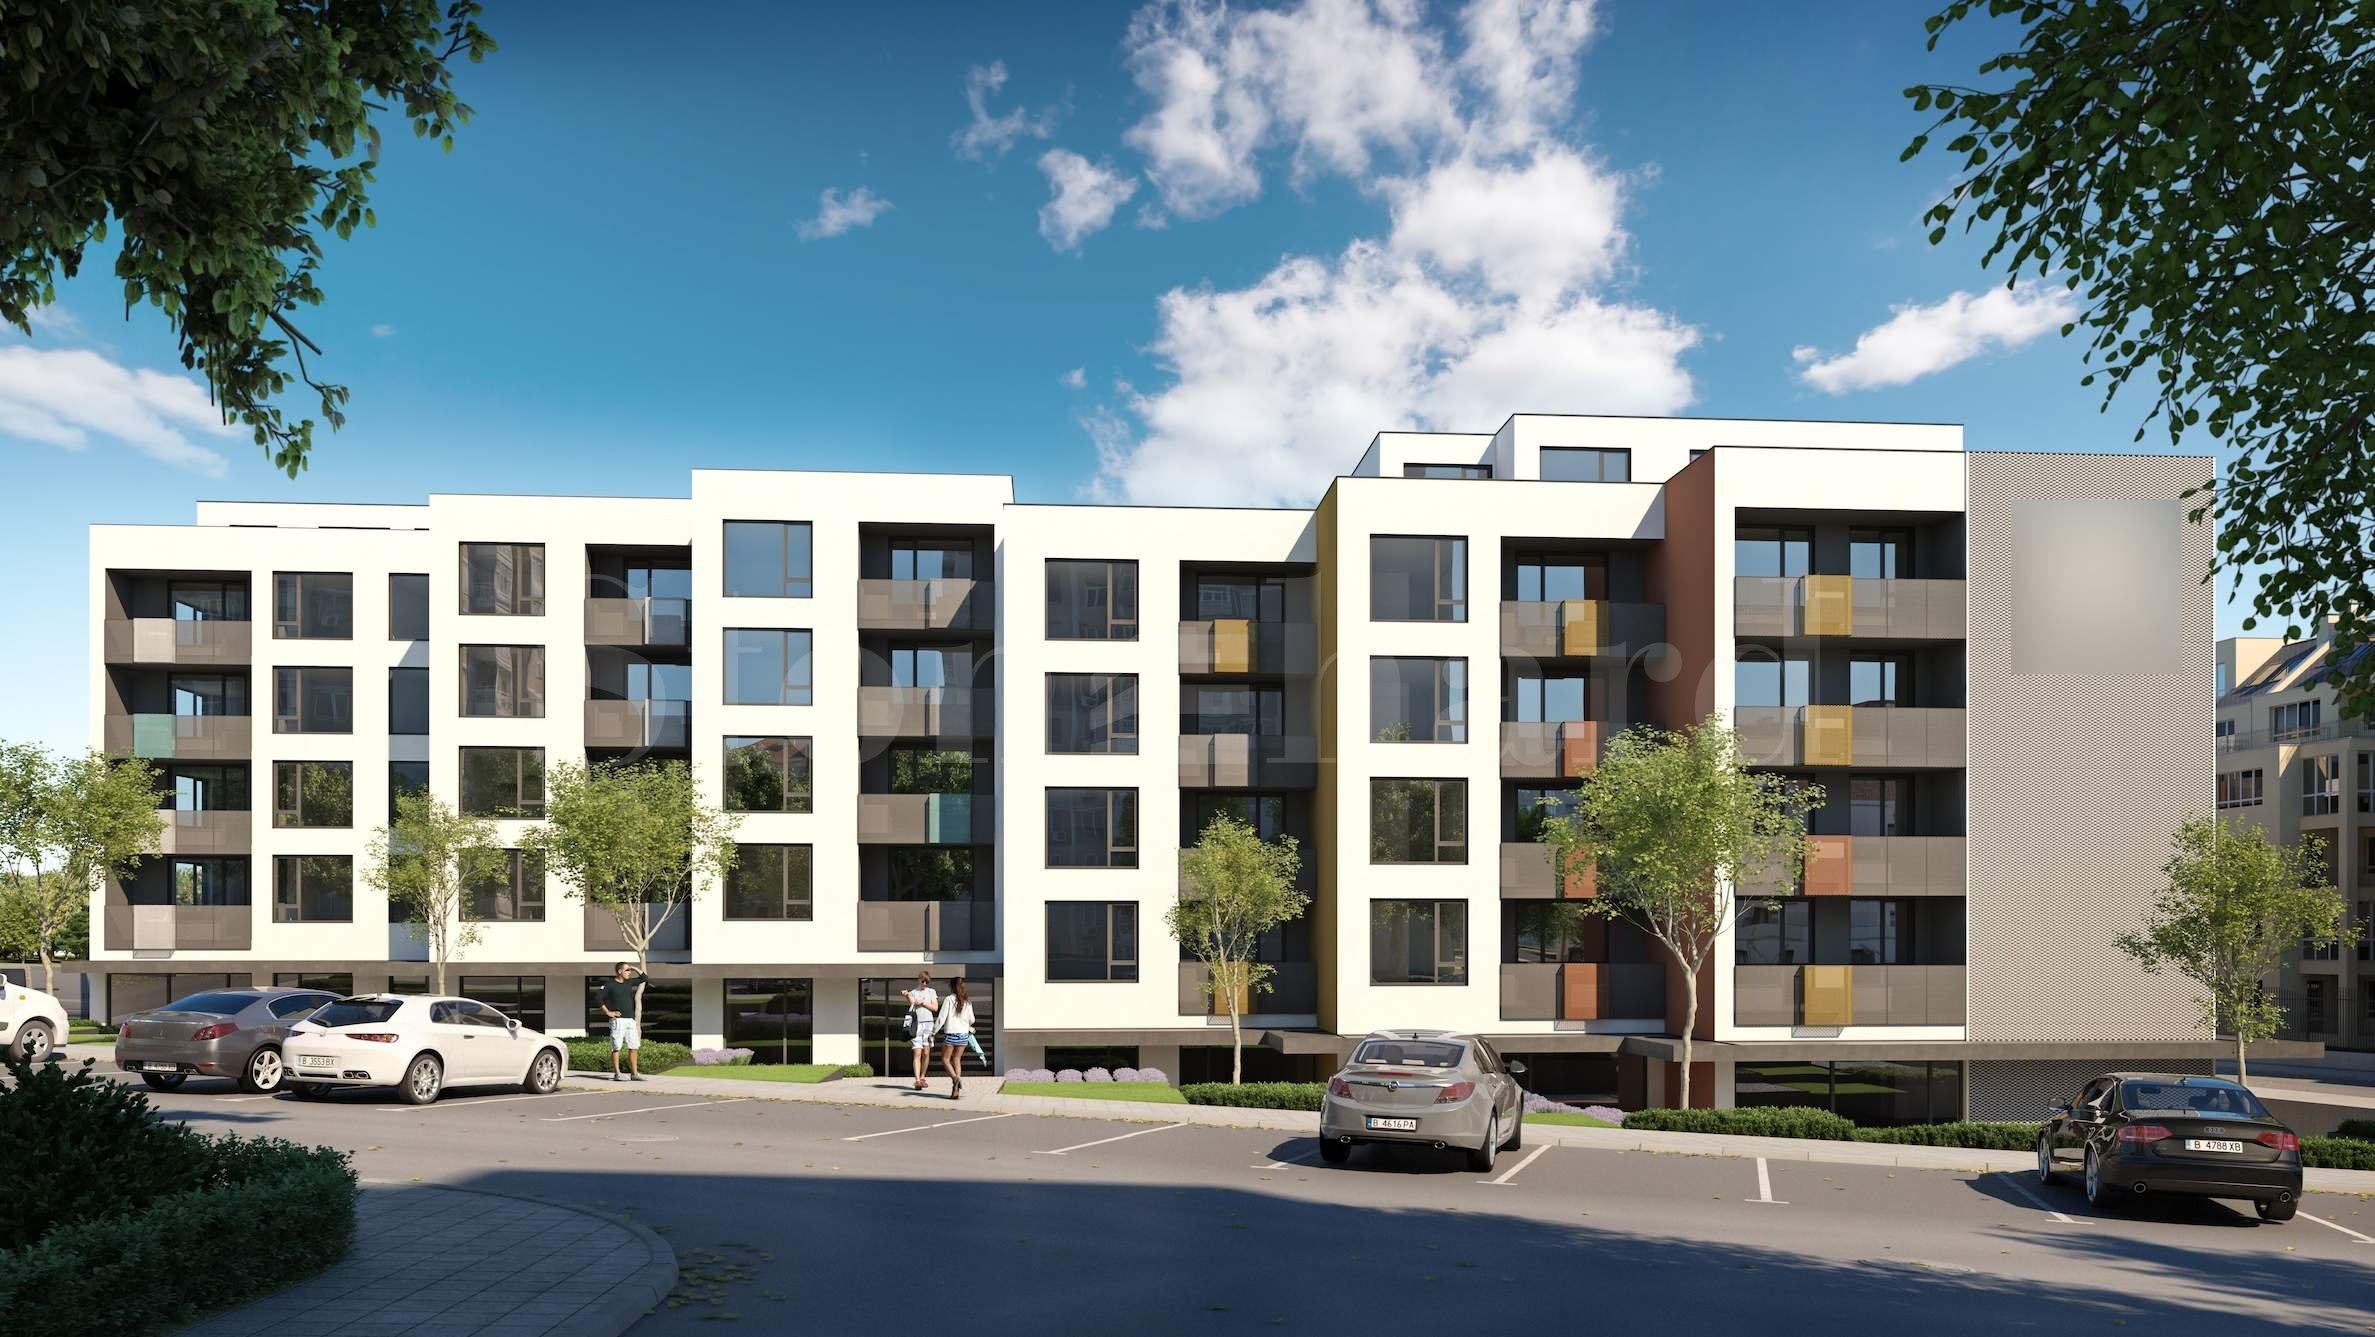 New project of 4 modern buildings in the city of Varna, Bulgaria1 - Stonehard